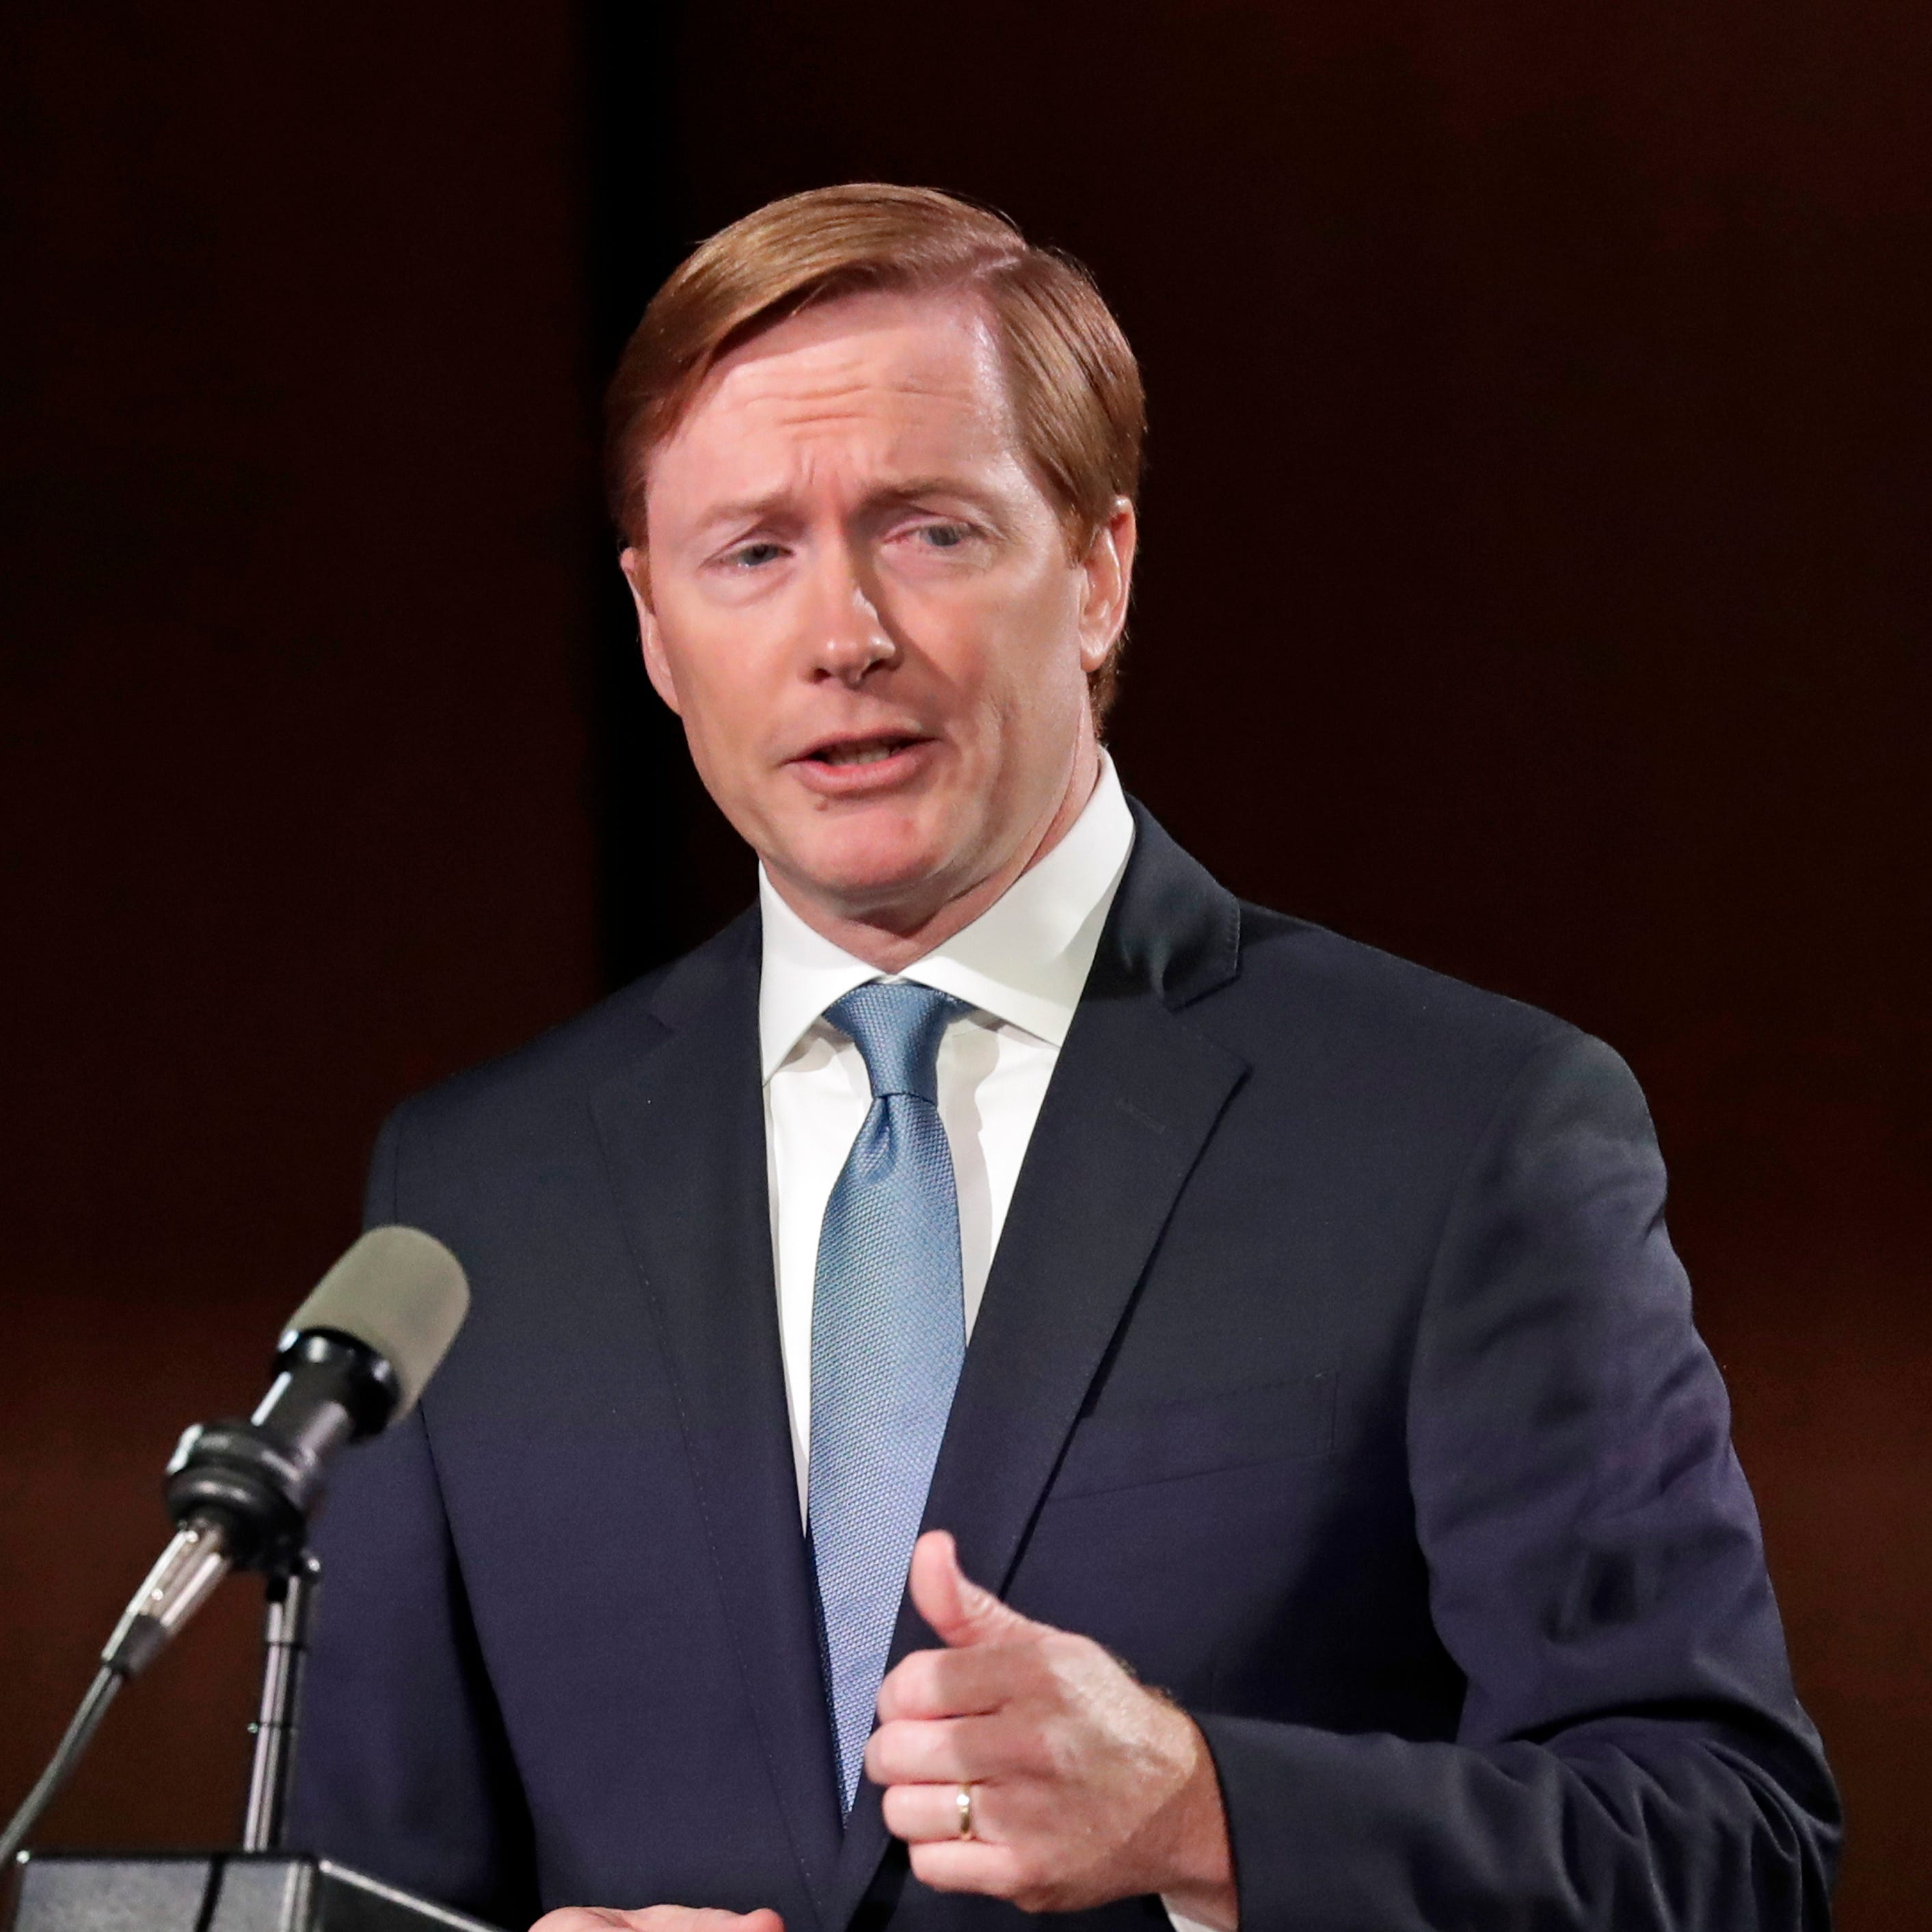 Former Florida Agriculture Commissioner Adam Putnam picked as new CEO for Ducks Unlimited